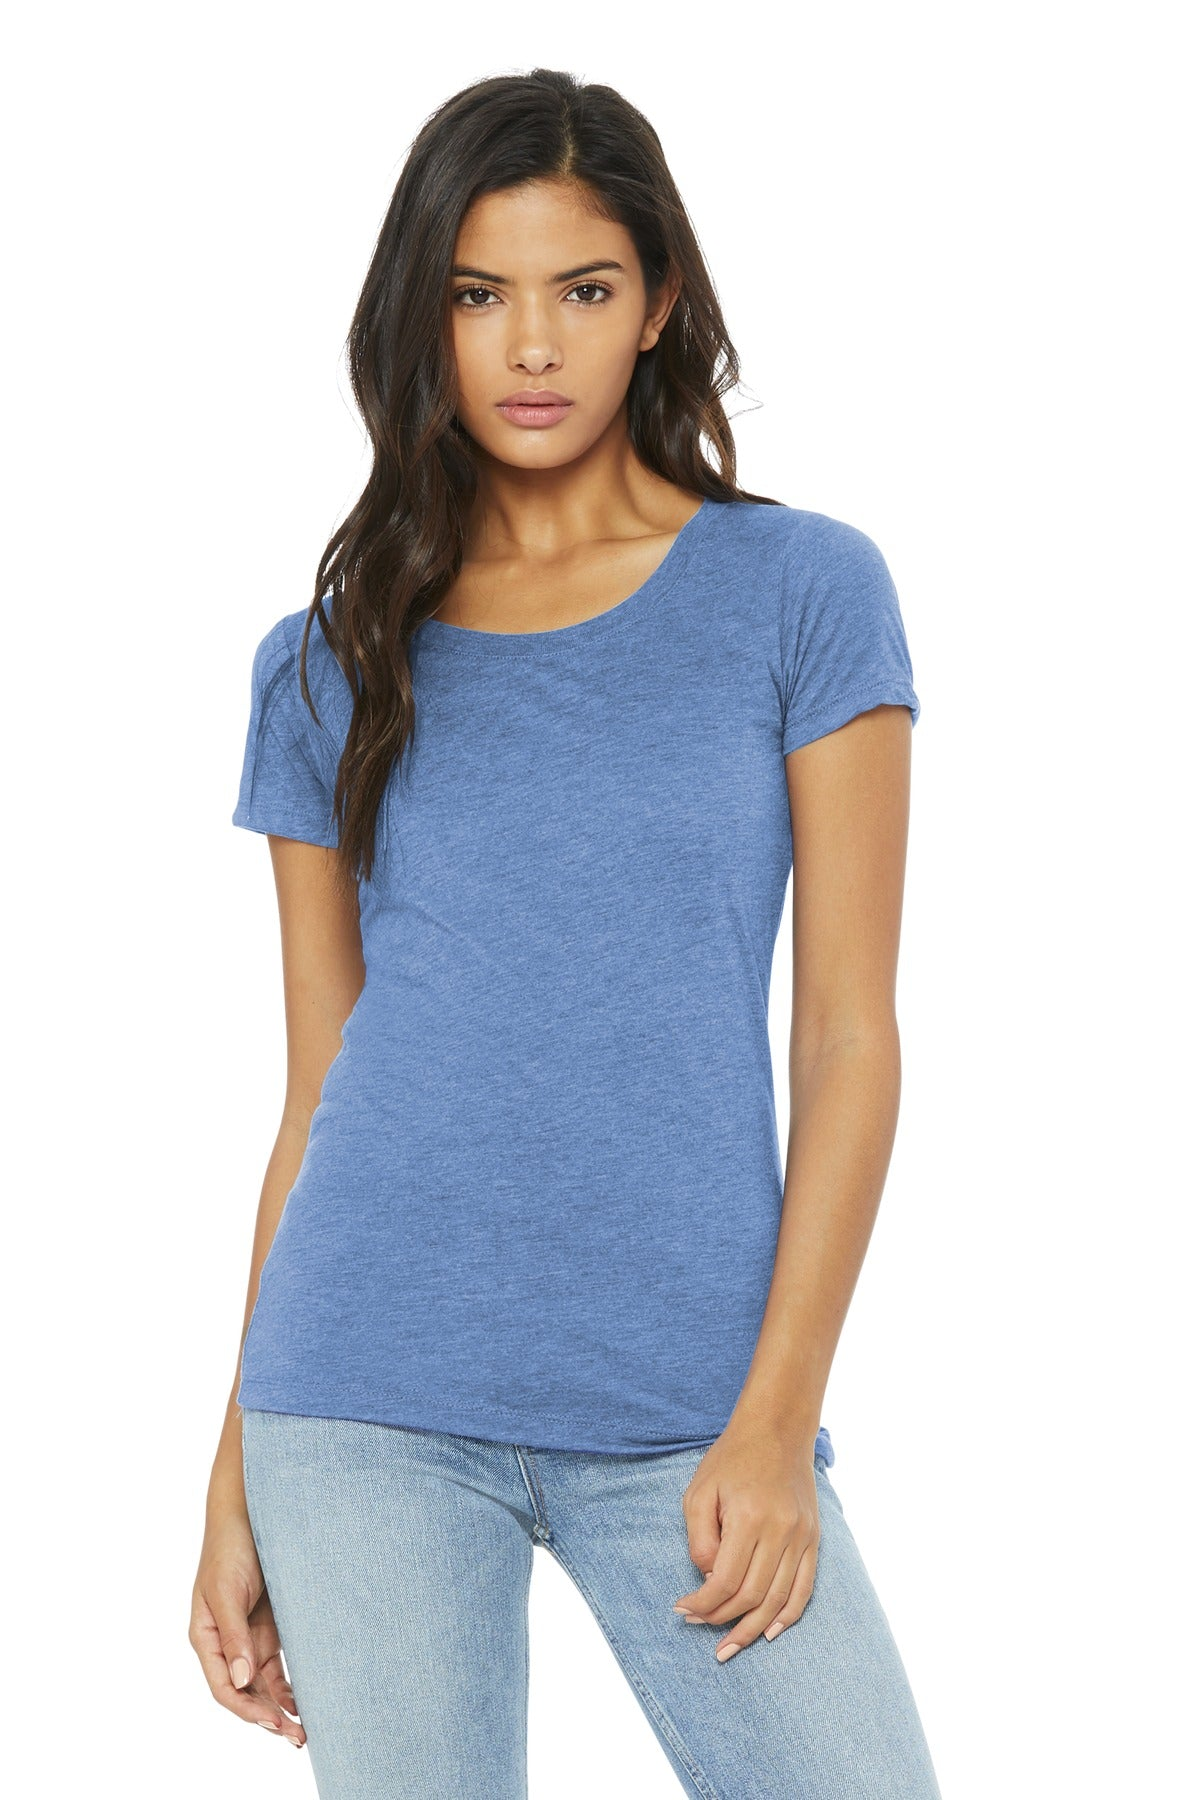 BELLA+CANVAS ® Women's Triblend Short Sleeve Tee. BC8413 - Aspire Zone